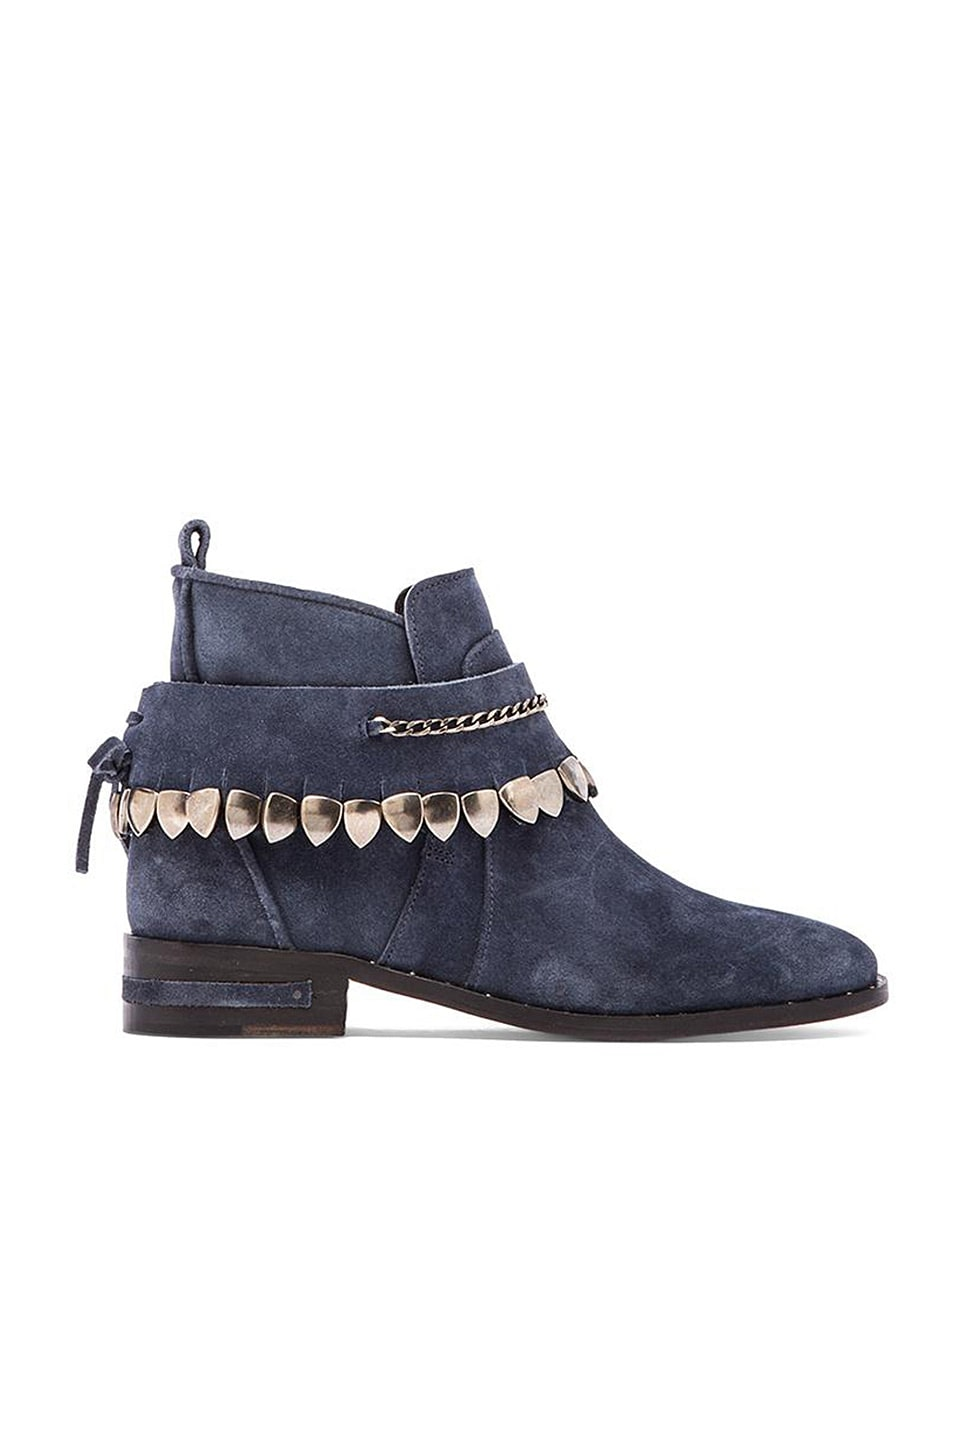 Freda Salvador Star Bootie in Navy Suede